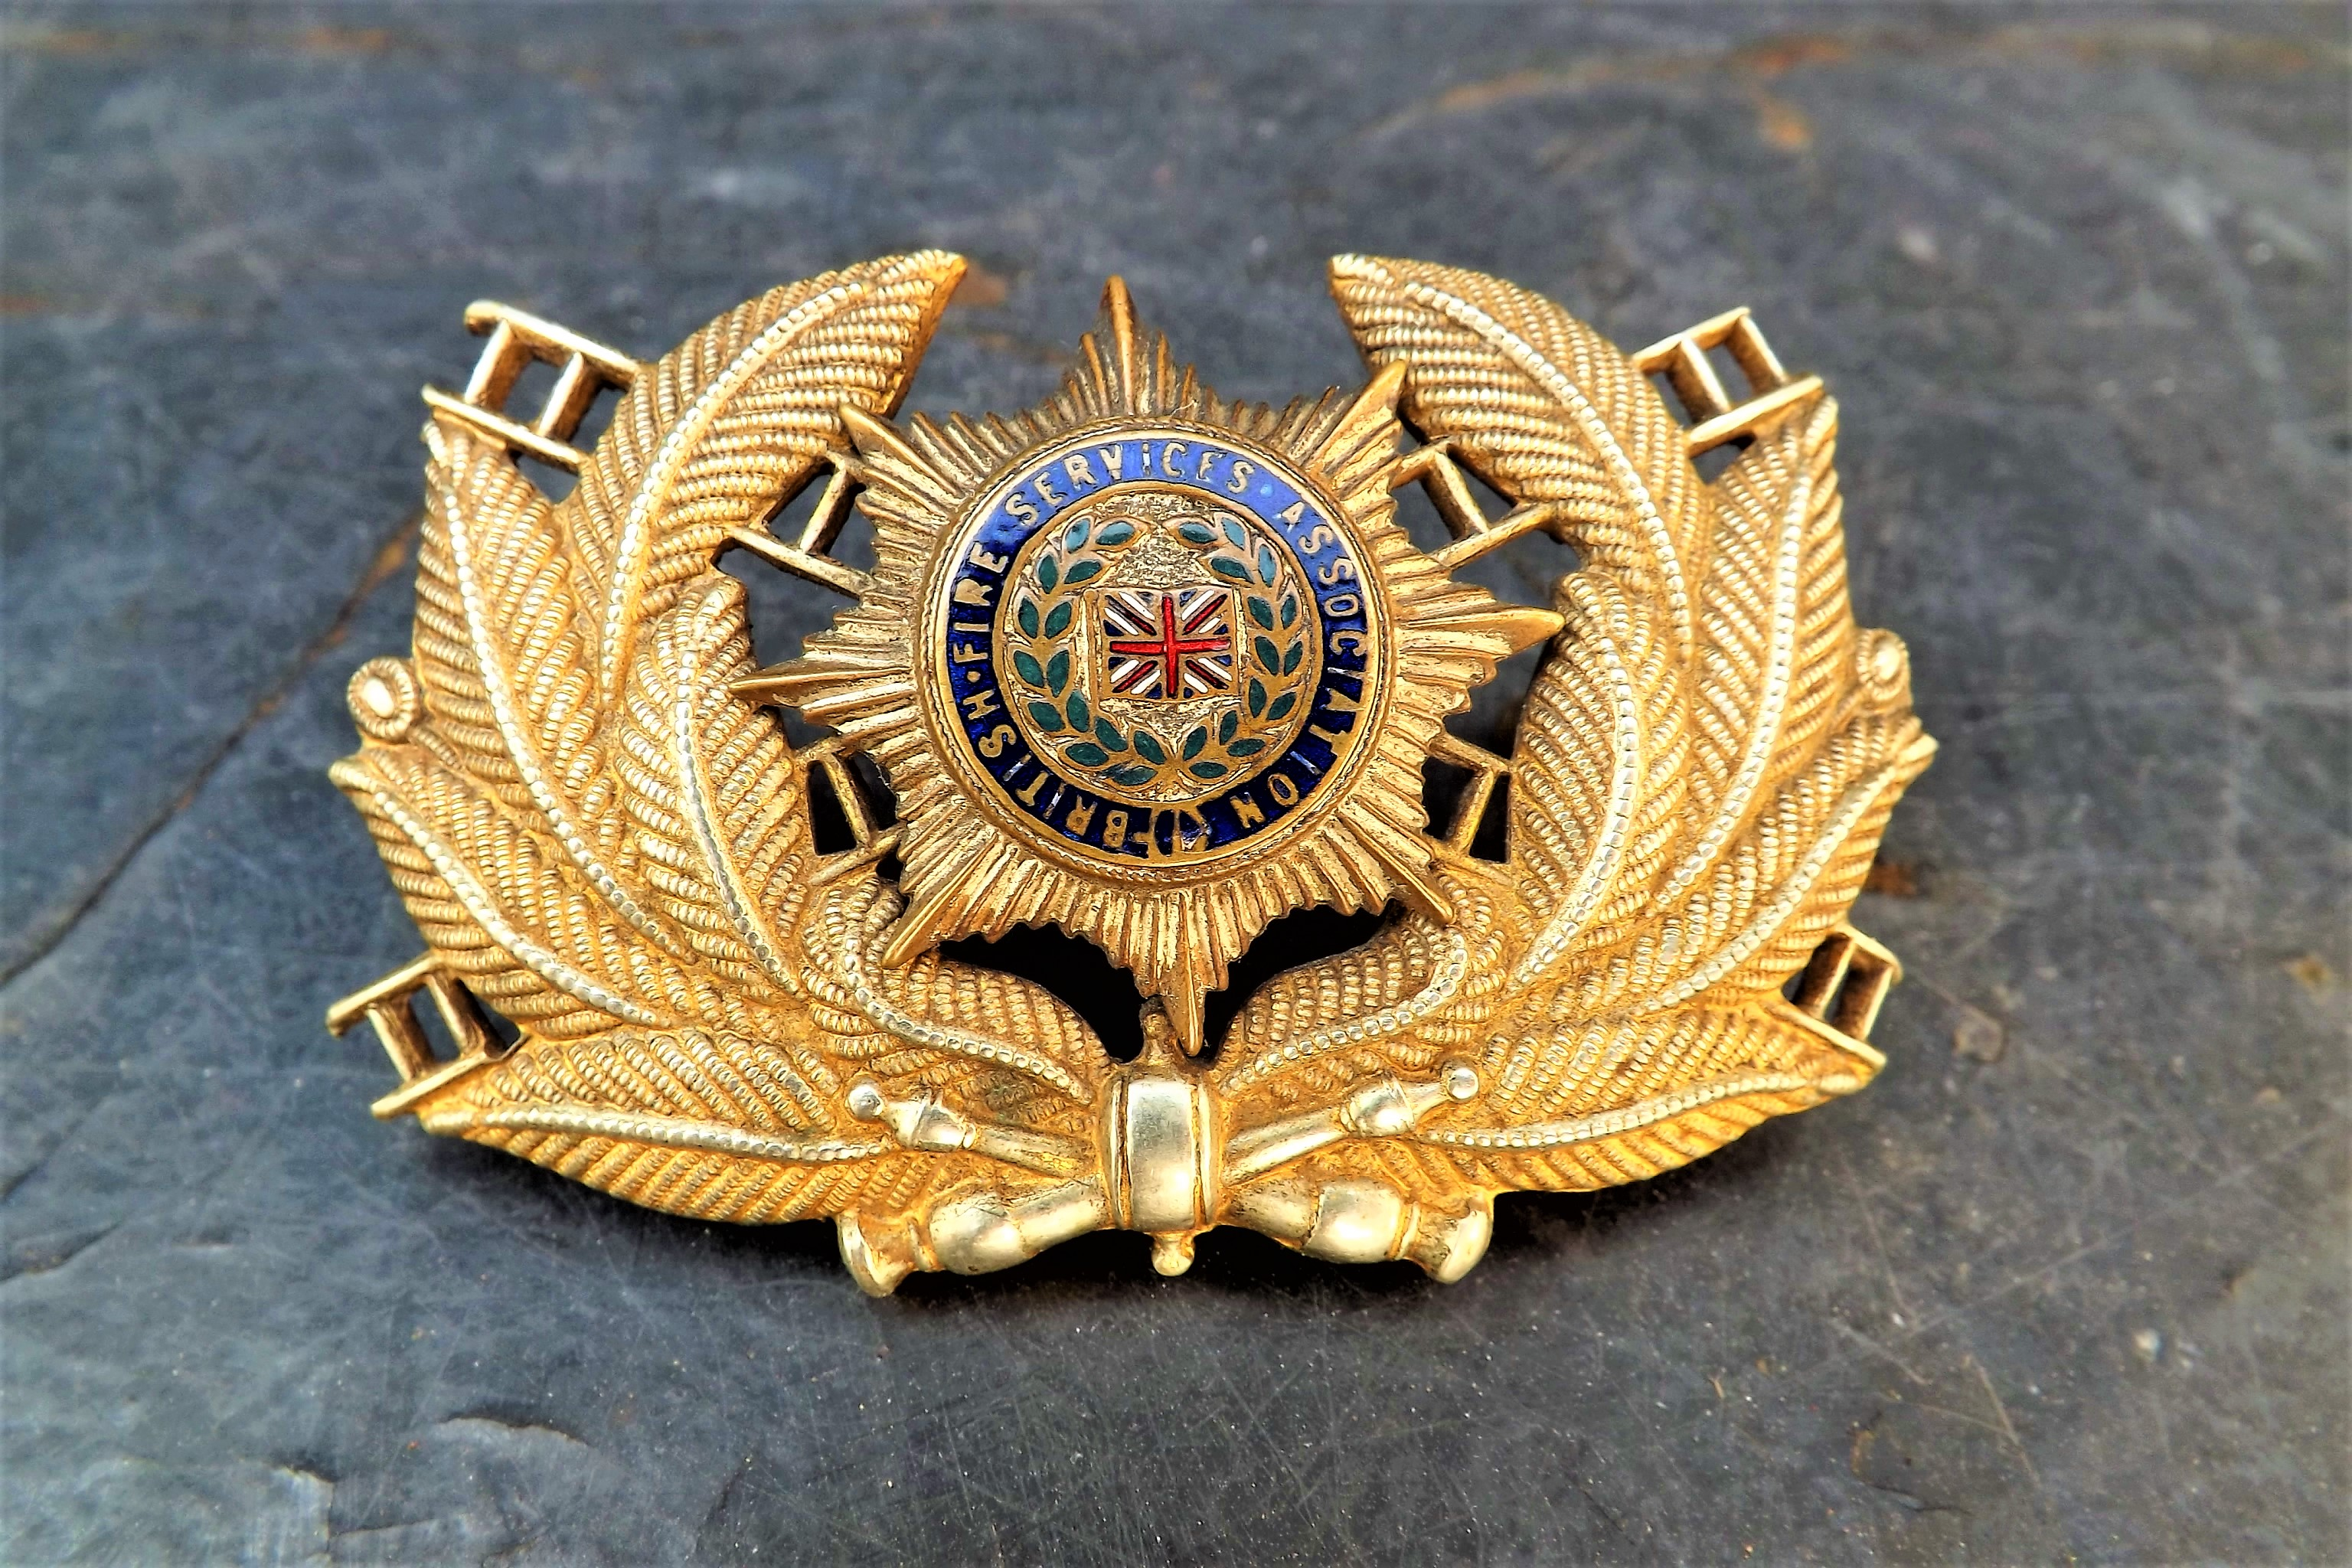 British Fire Services Association Cap Badge Extremely Rare